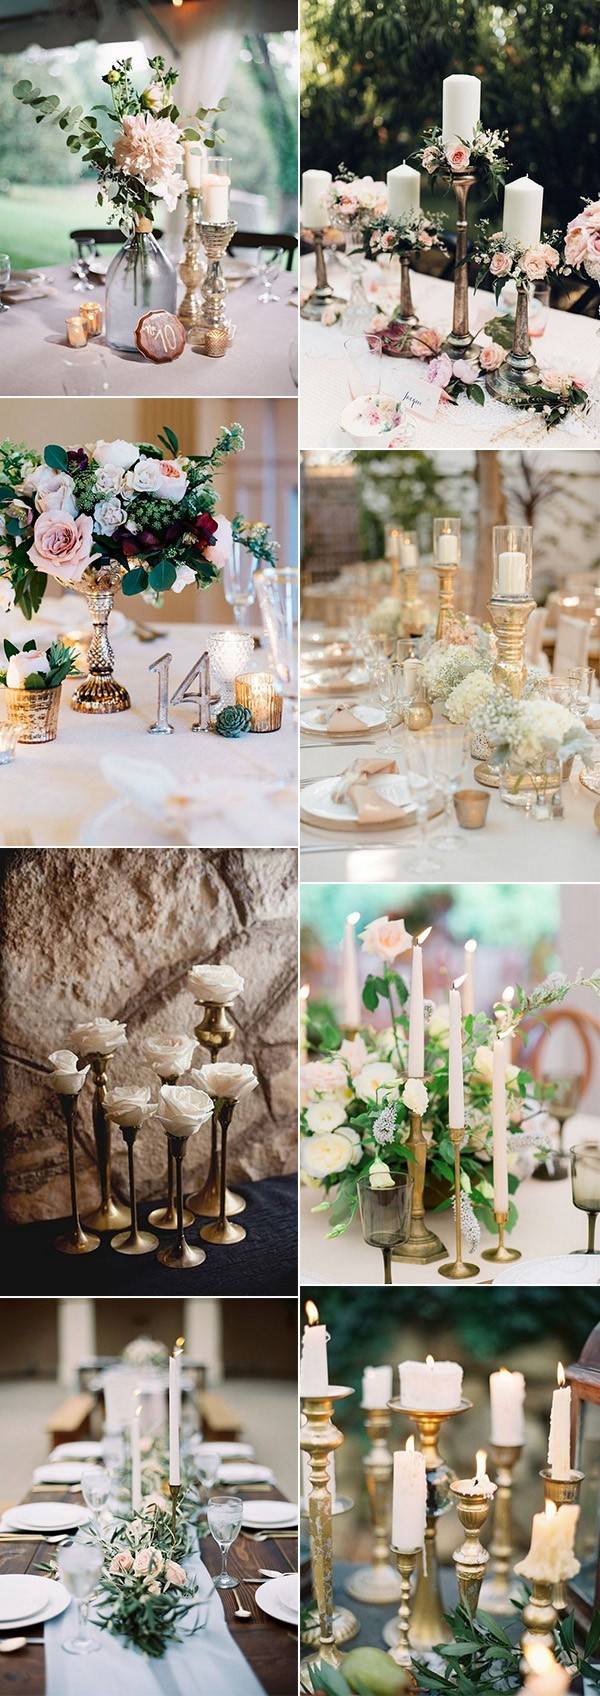 vintage wedding centerpiece ideas with candlesticks